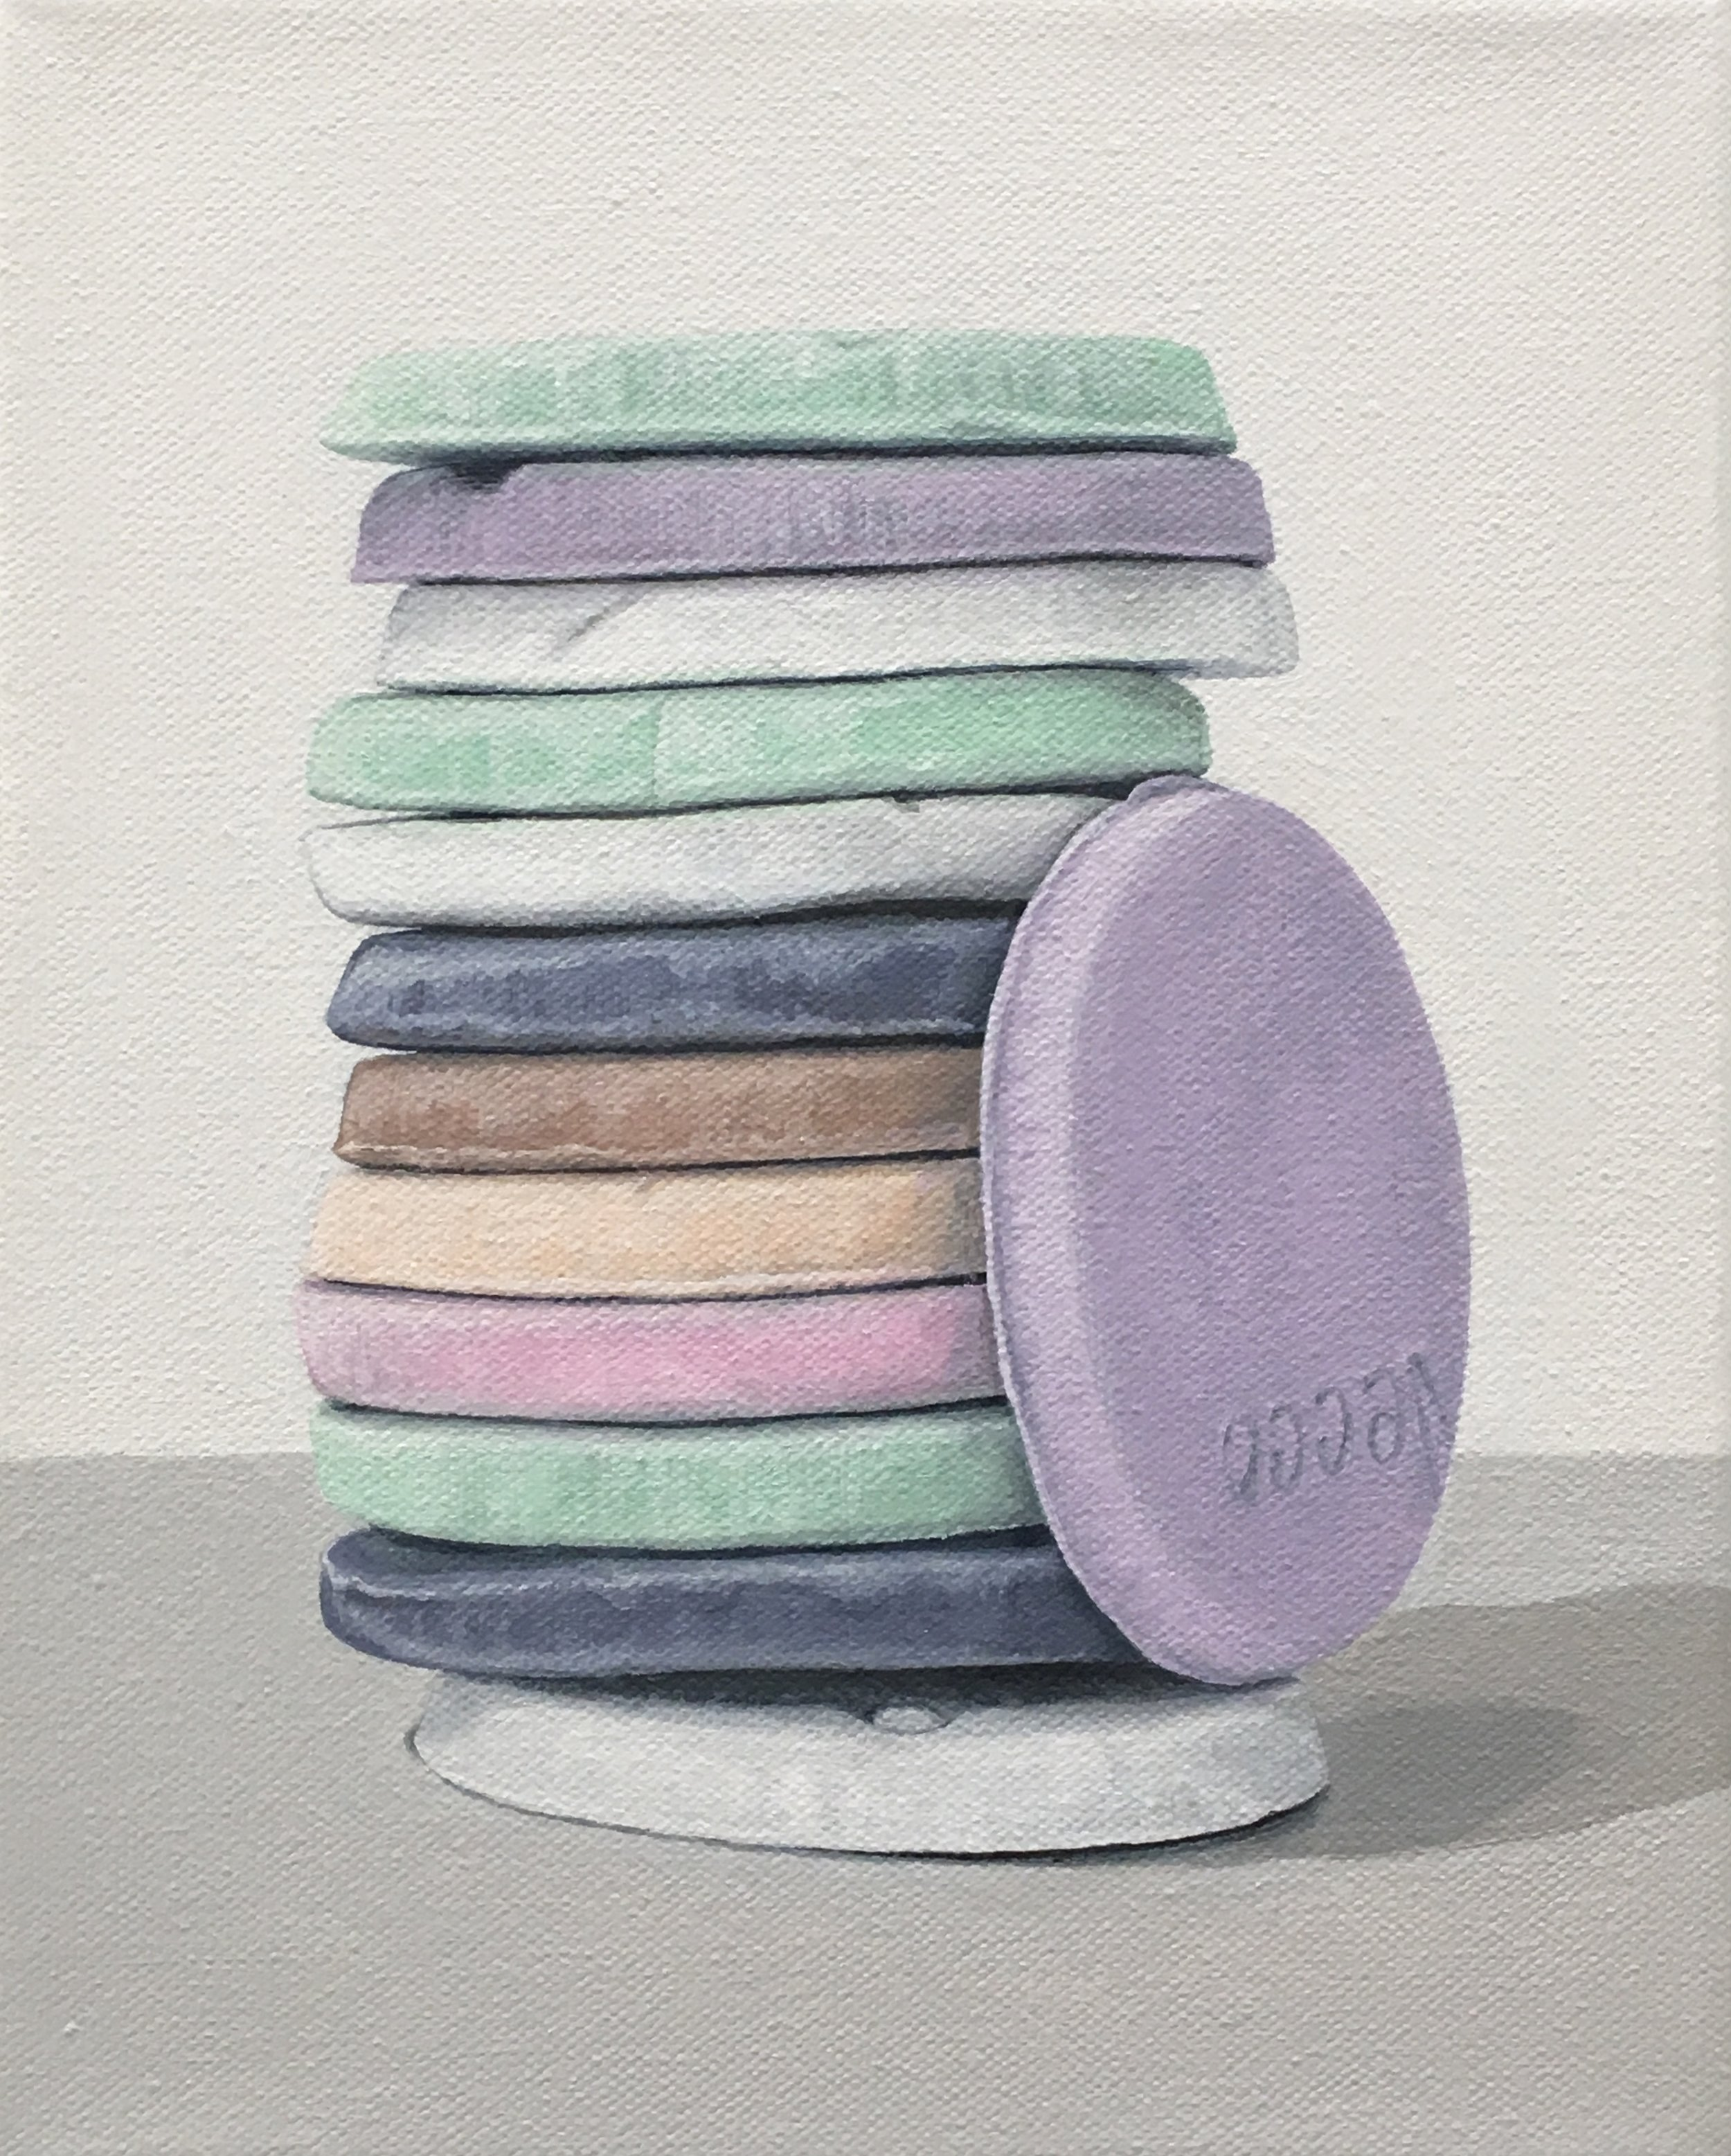 """Totem: Necco Wafer V  This little candy stacks is built from 'An American Classic' candy, the Necco Wafer. As a culture we are generally attracted to these charming colors, but once the candy is experienced as a food there is often a mismatch between its attractiveness and its taste. This work explores the occurrence of the incongruity of appearance and experience.  8"""" x 10"""" gallery wrapped canvas  $250.00"""